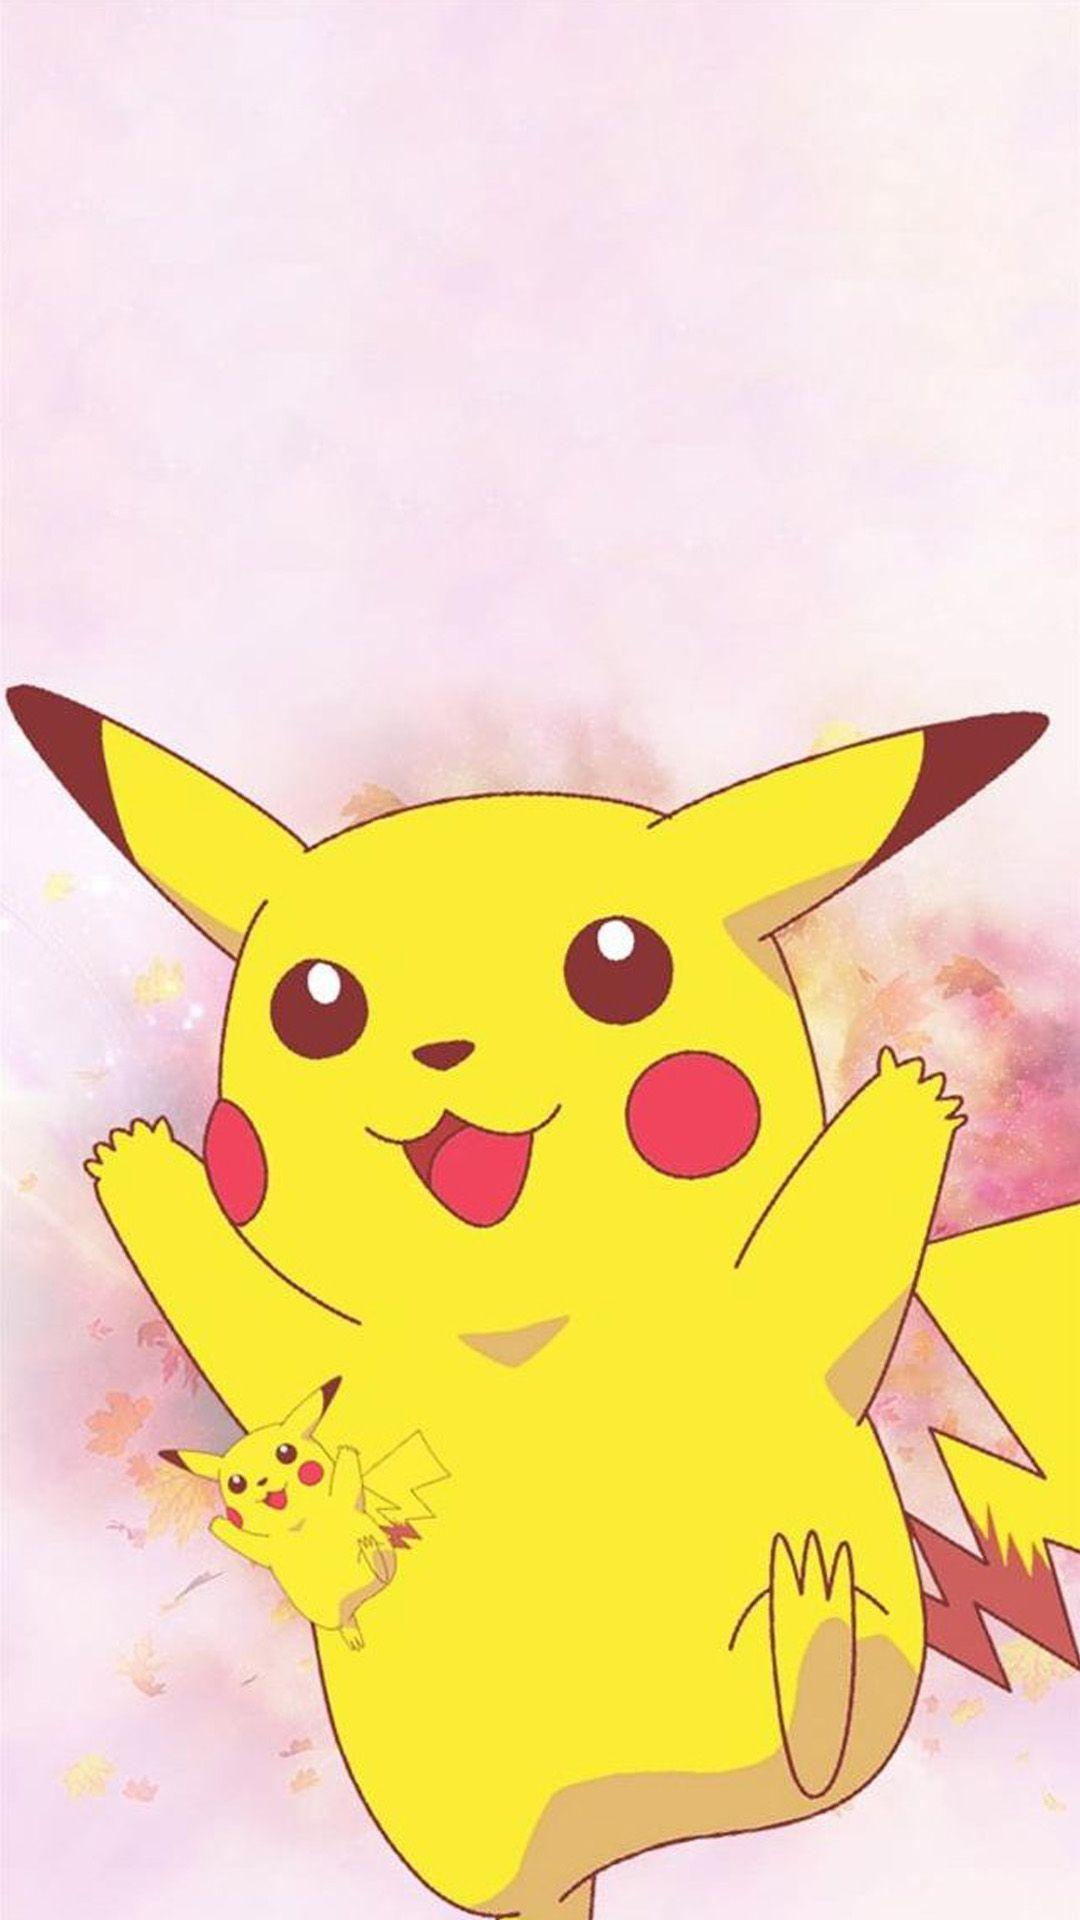 Pikachu Android wallpaper - Android HD wallpapers